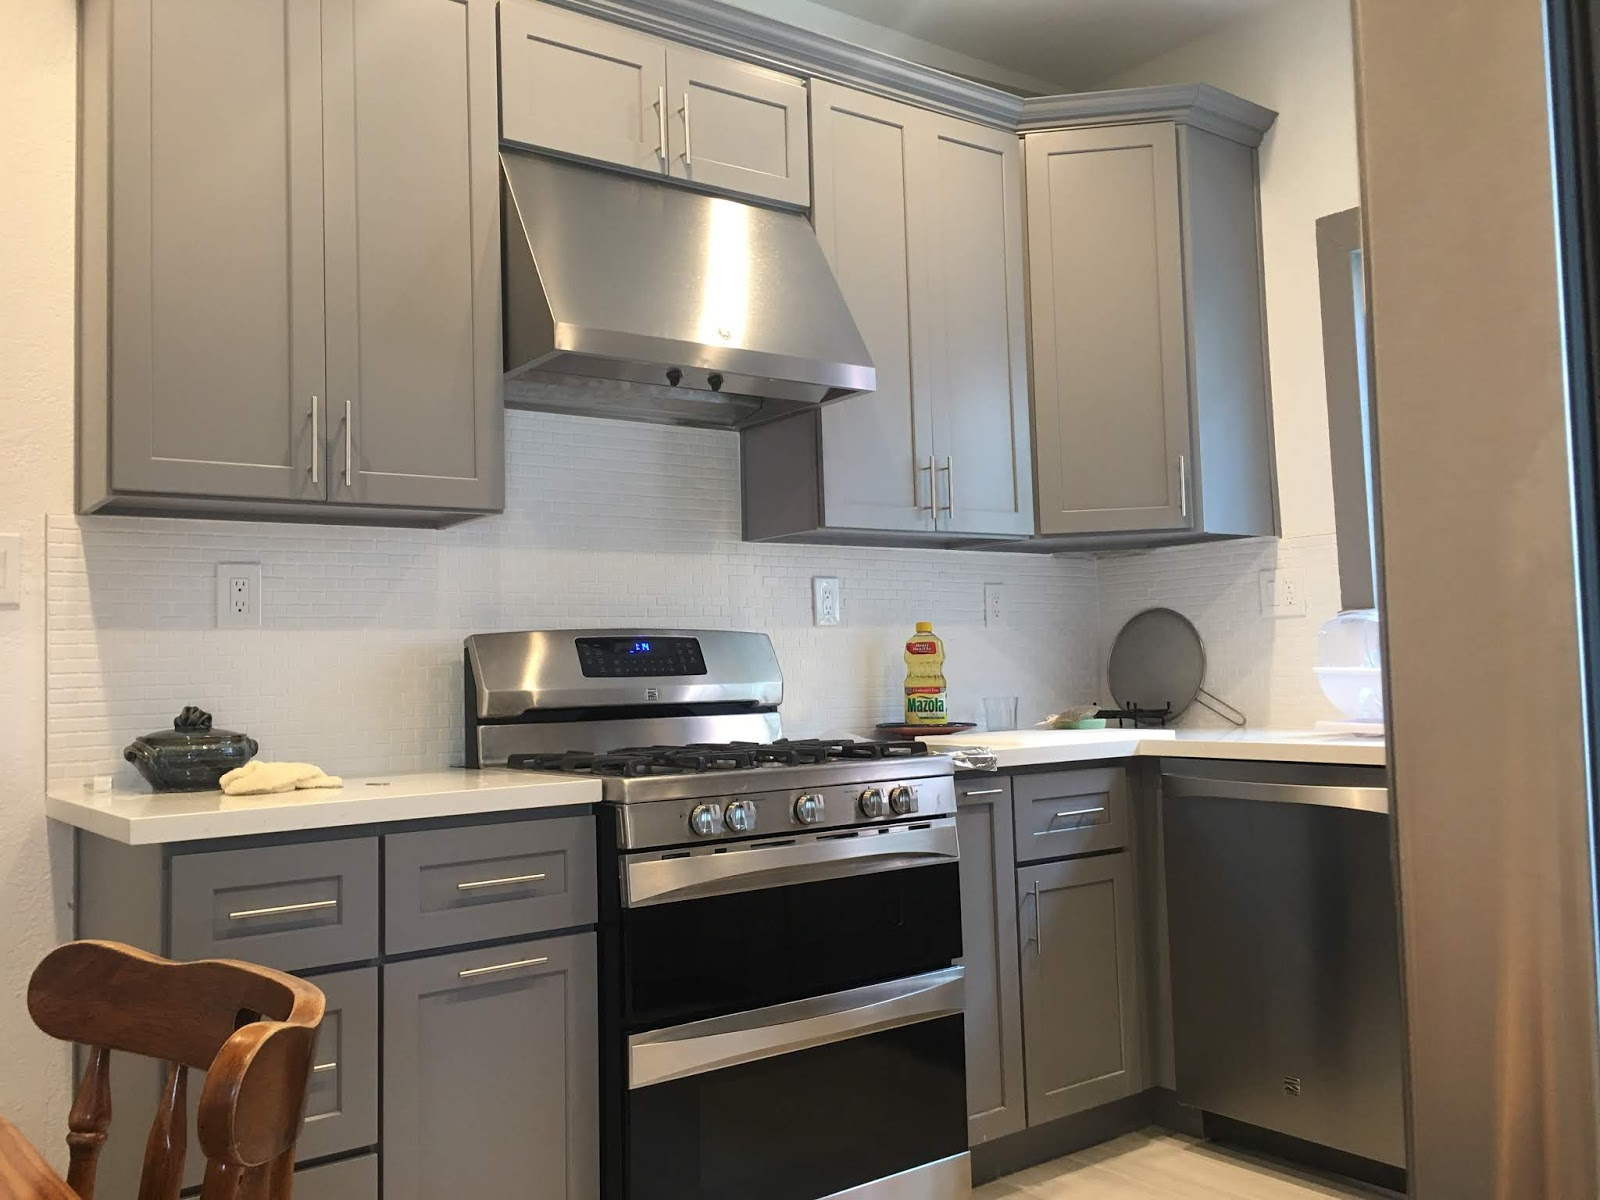 Style Design Remodeling Ideas For Today S Lifestyle Small Kitchen Remodel Home Vs Condo